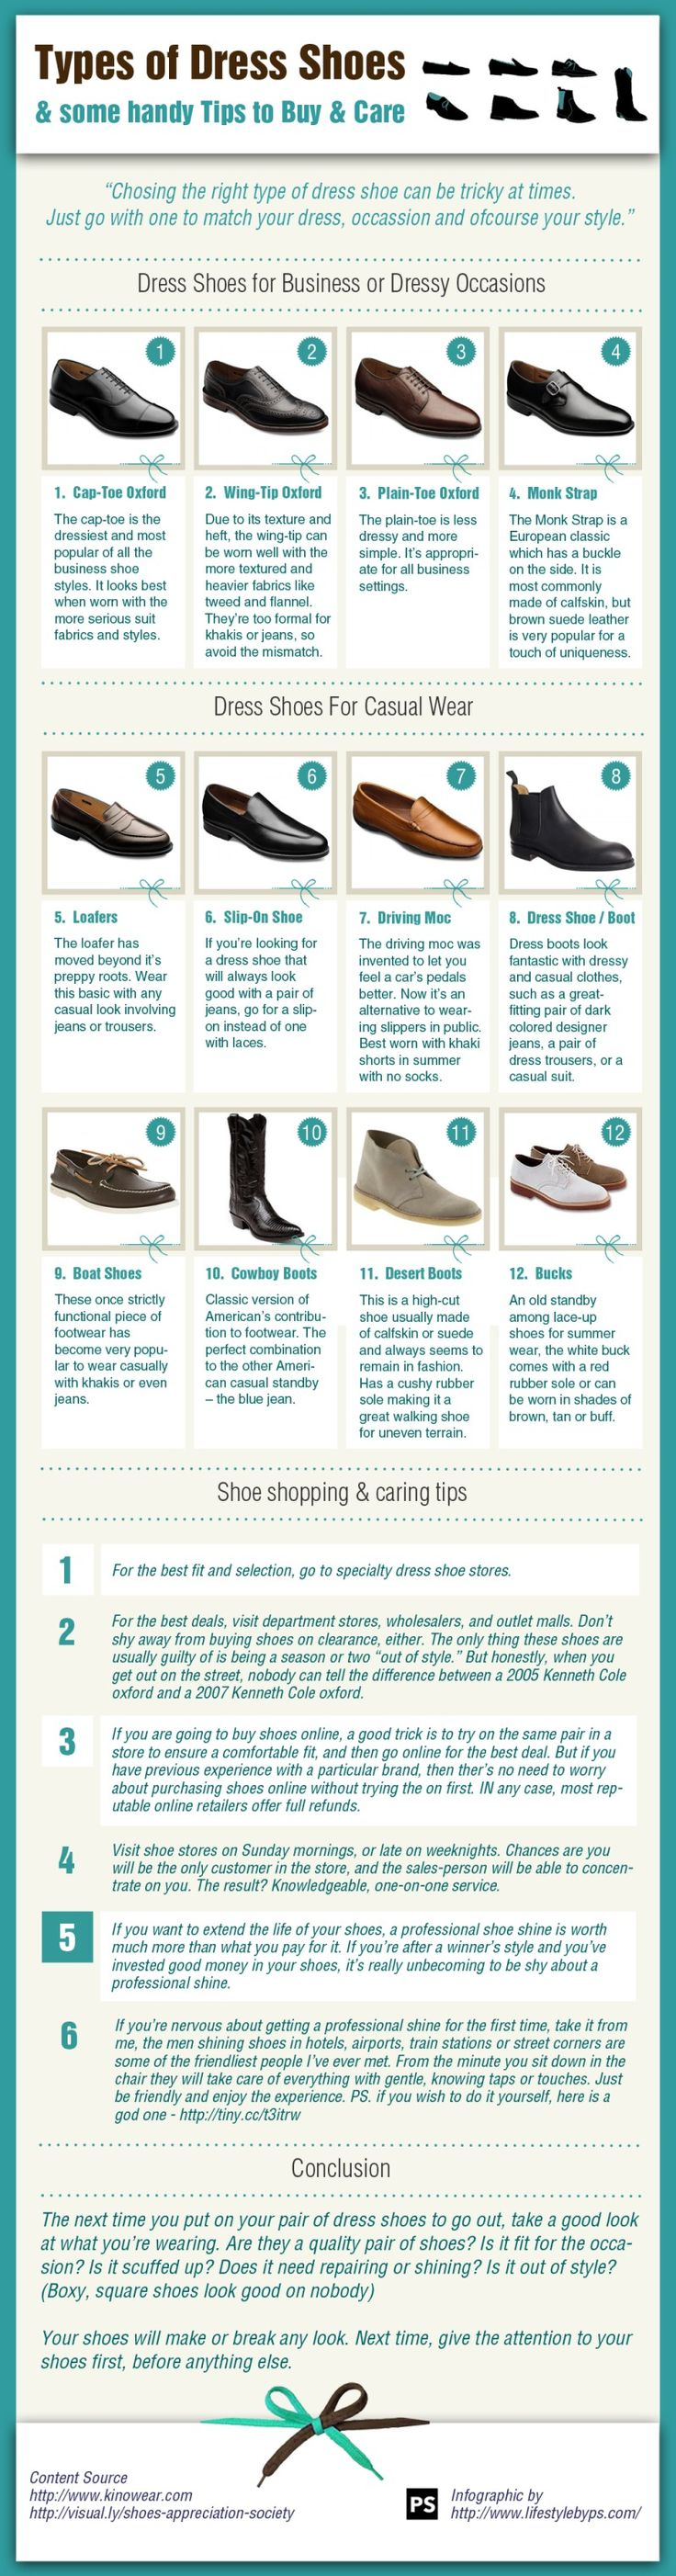 Types of Men's Dress Shoes and some Handy Tips to Buy and Care.